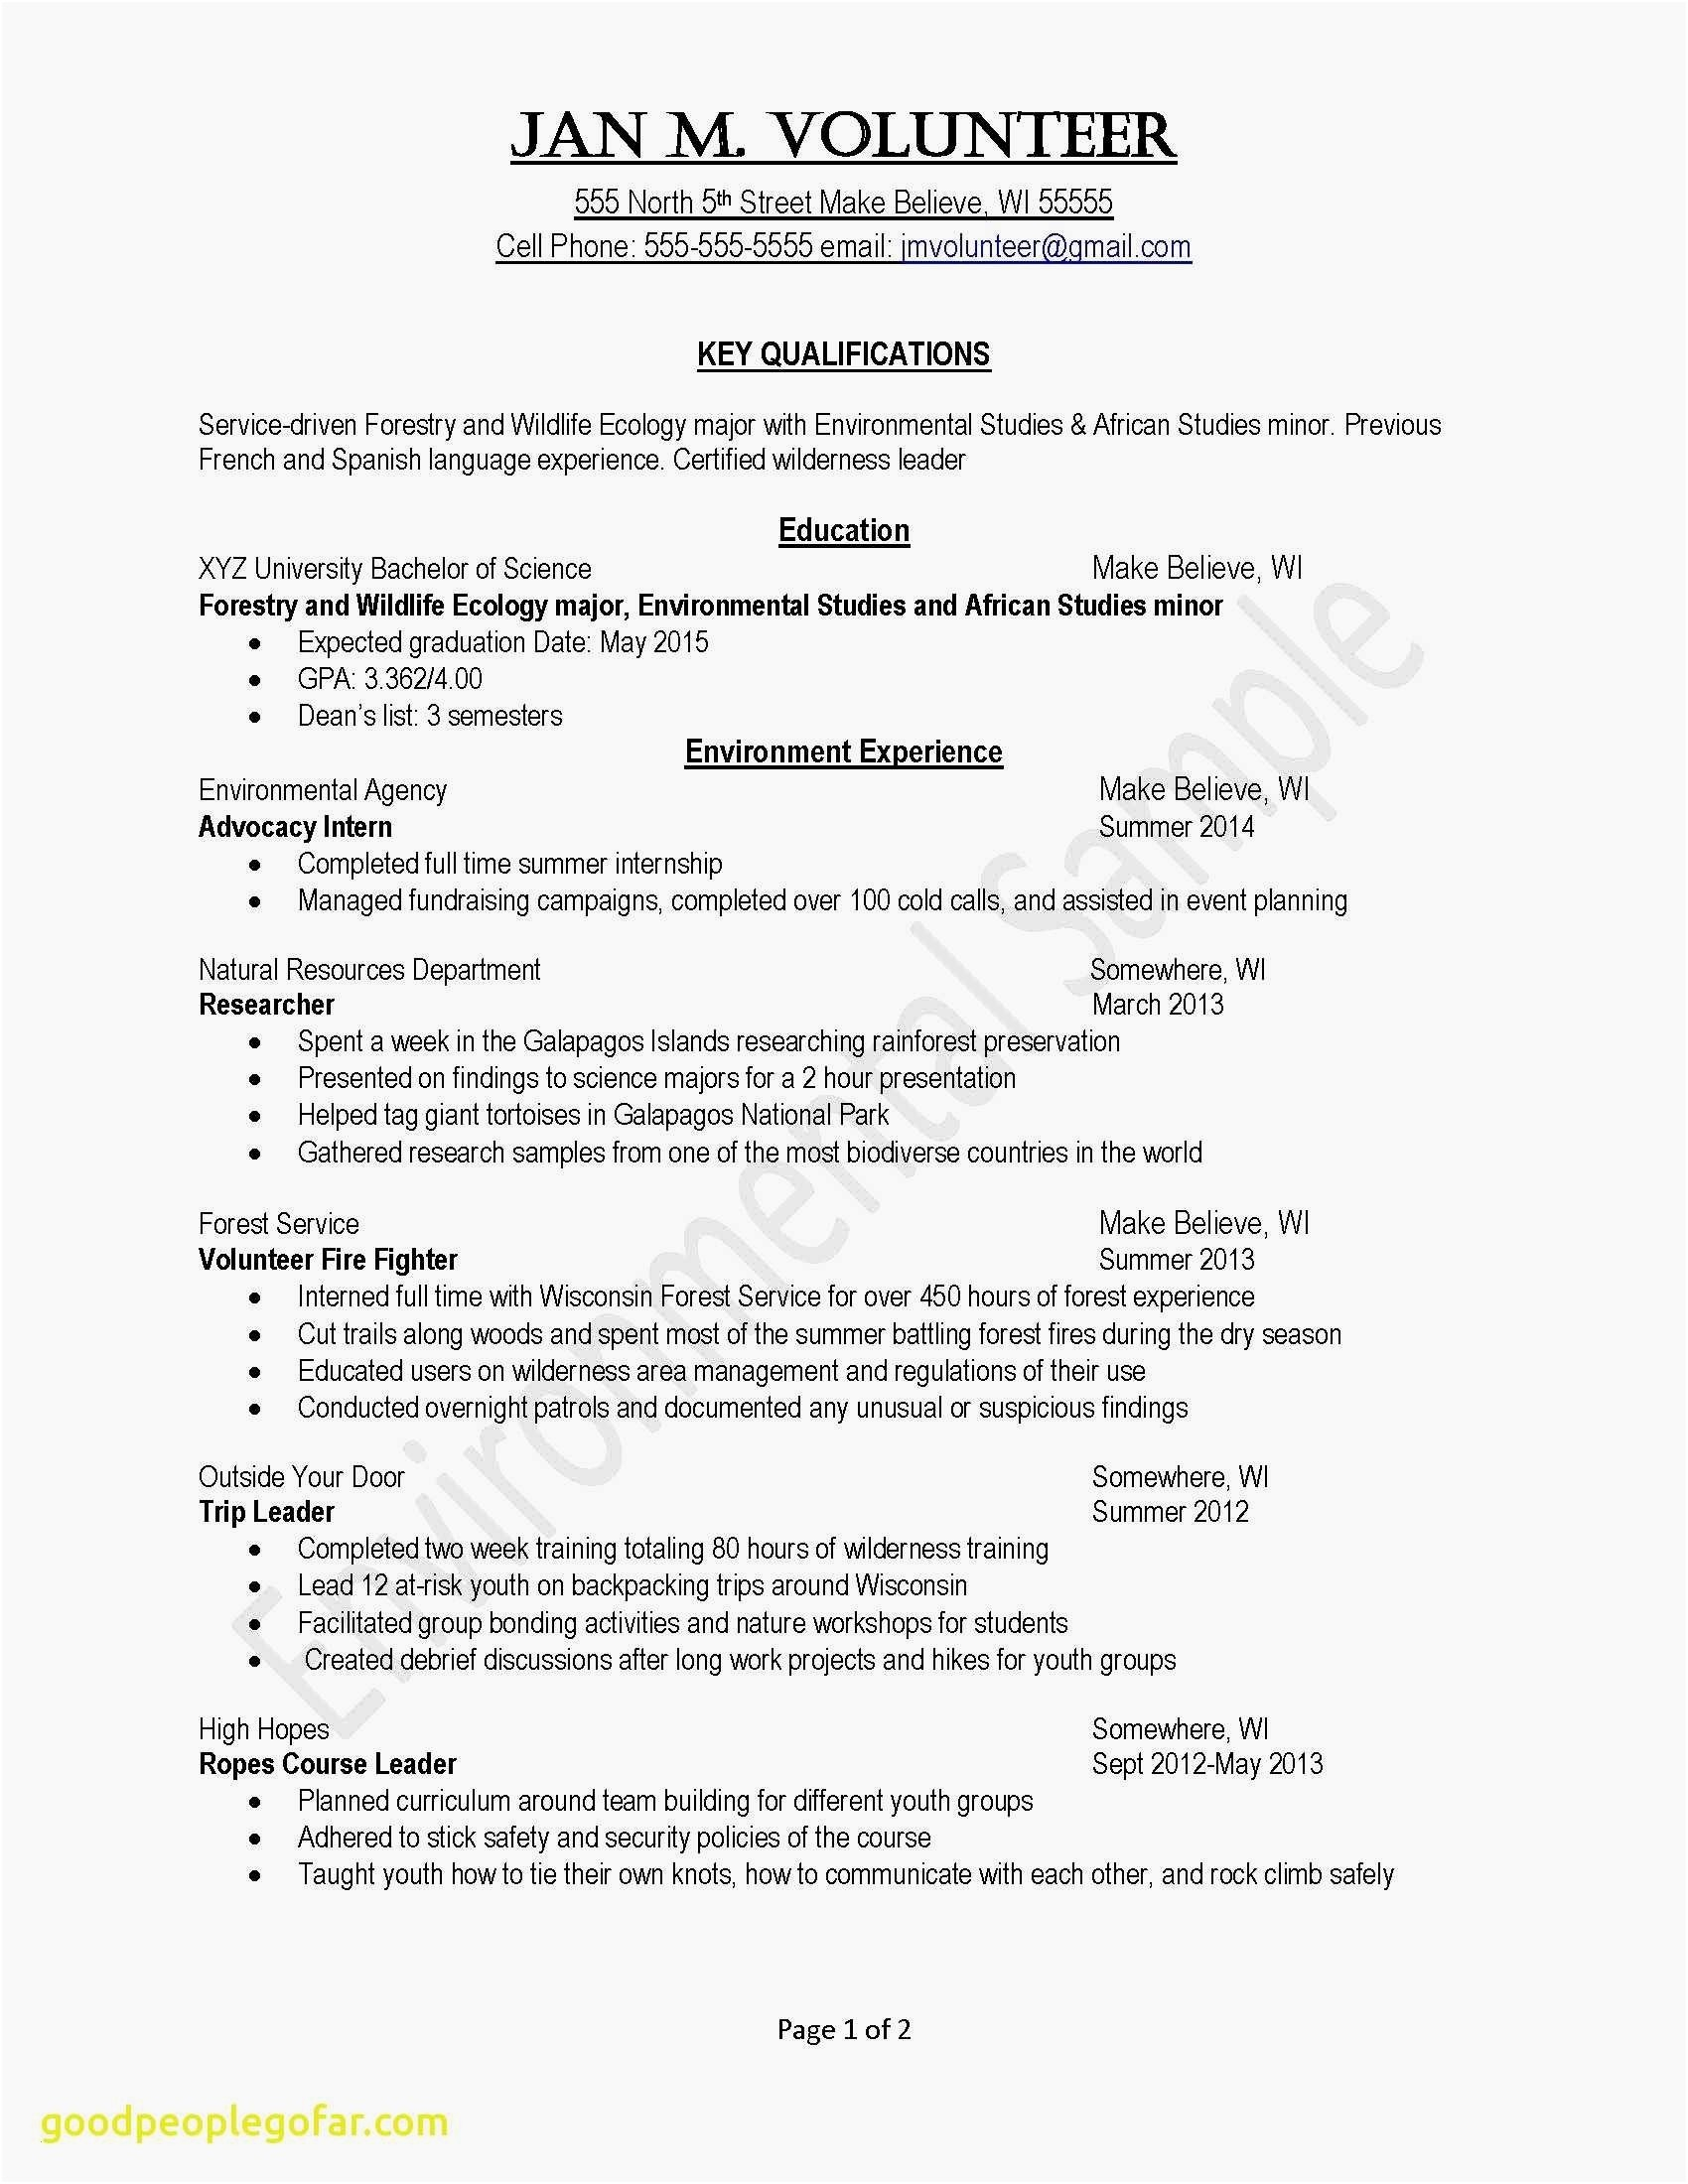 Security Resume Template - Part Time Jobs Resume Example Inspirational Luxury Examples Resumes